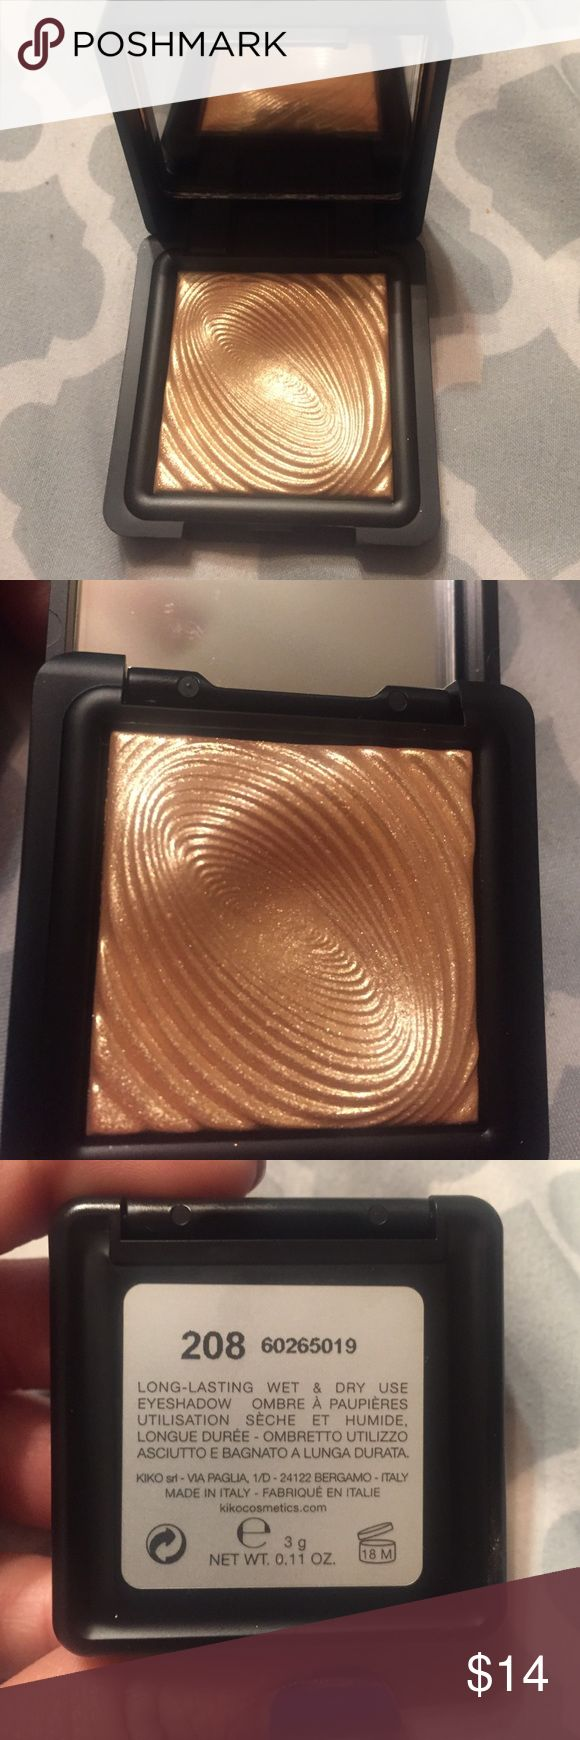 Kiko 208 shadow Can be hard to find. Amazing dupe for Mac whisper or guilt! So pretty. Can be used as highlight, or shadow. Wet or dry. Authentic from Kiko store in New Jersey. no trades/holds. PRICE IS FIRM Kiko milano  Makeup Luminizer